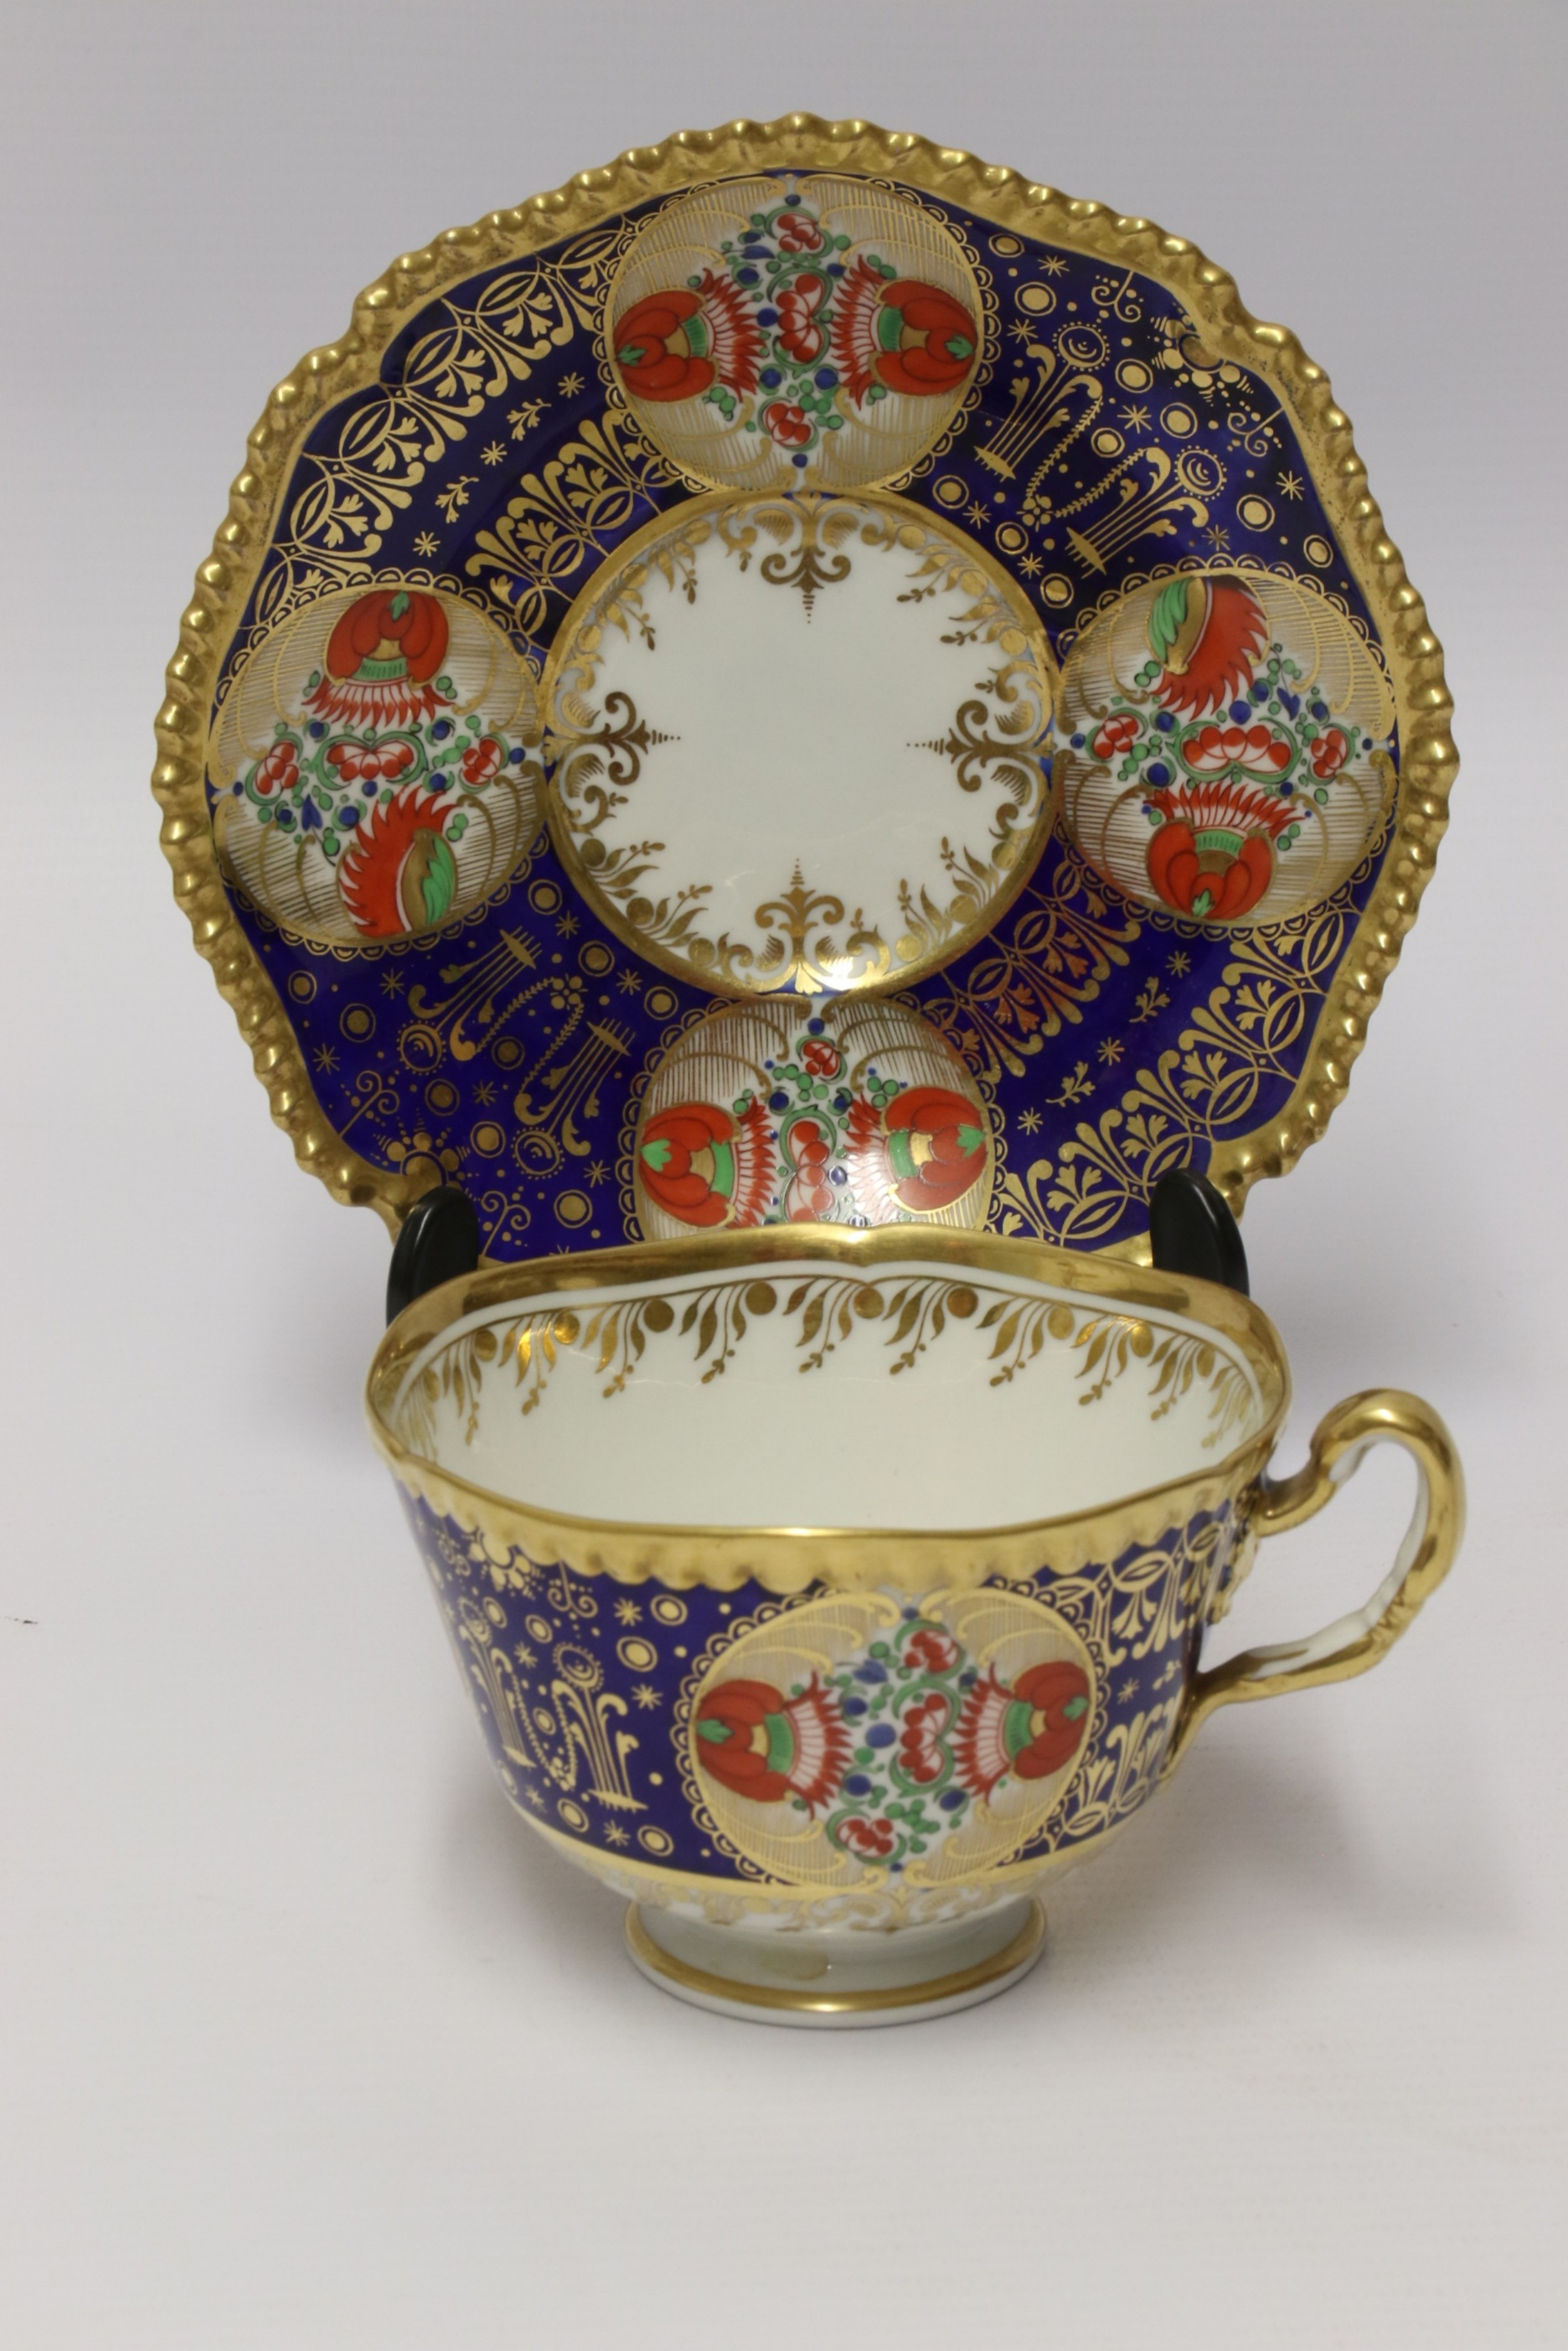 an early 19th c chamberlain worcester cup and saucerfrom the sir james yeo service